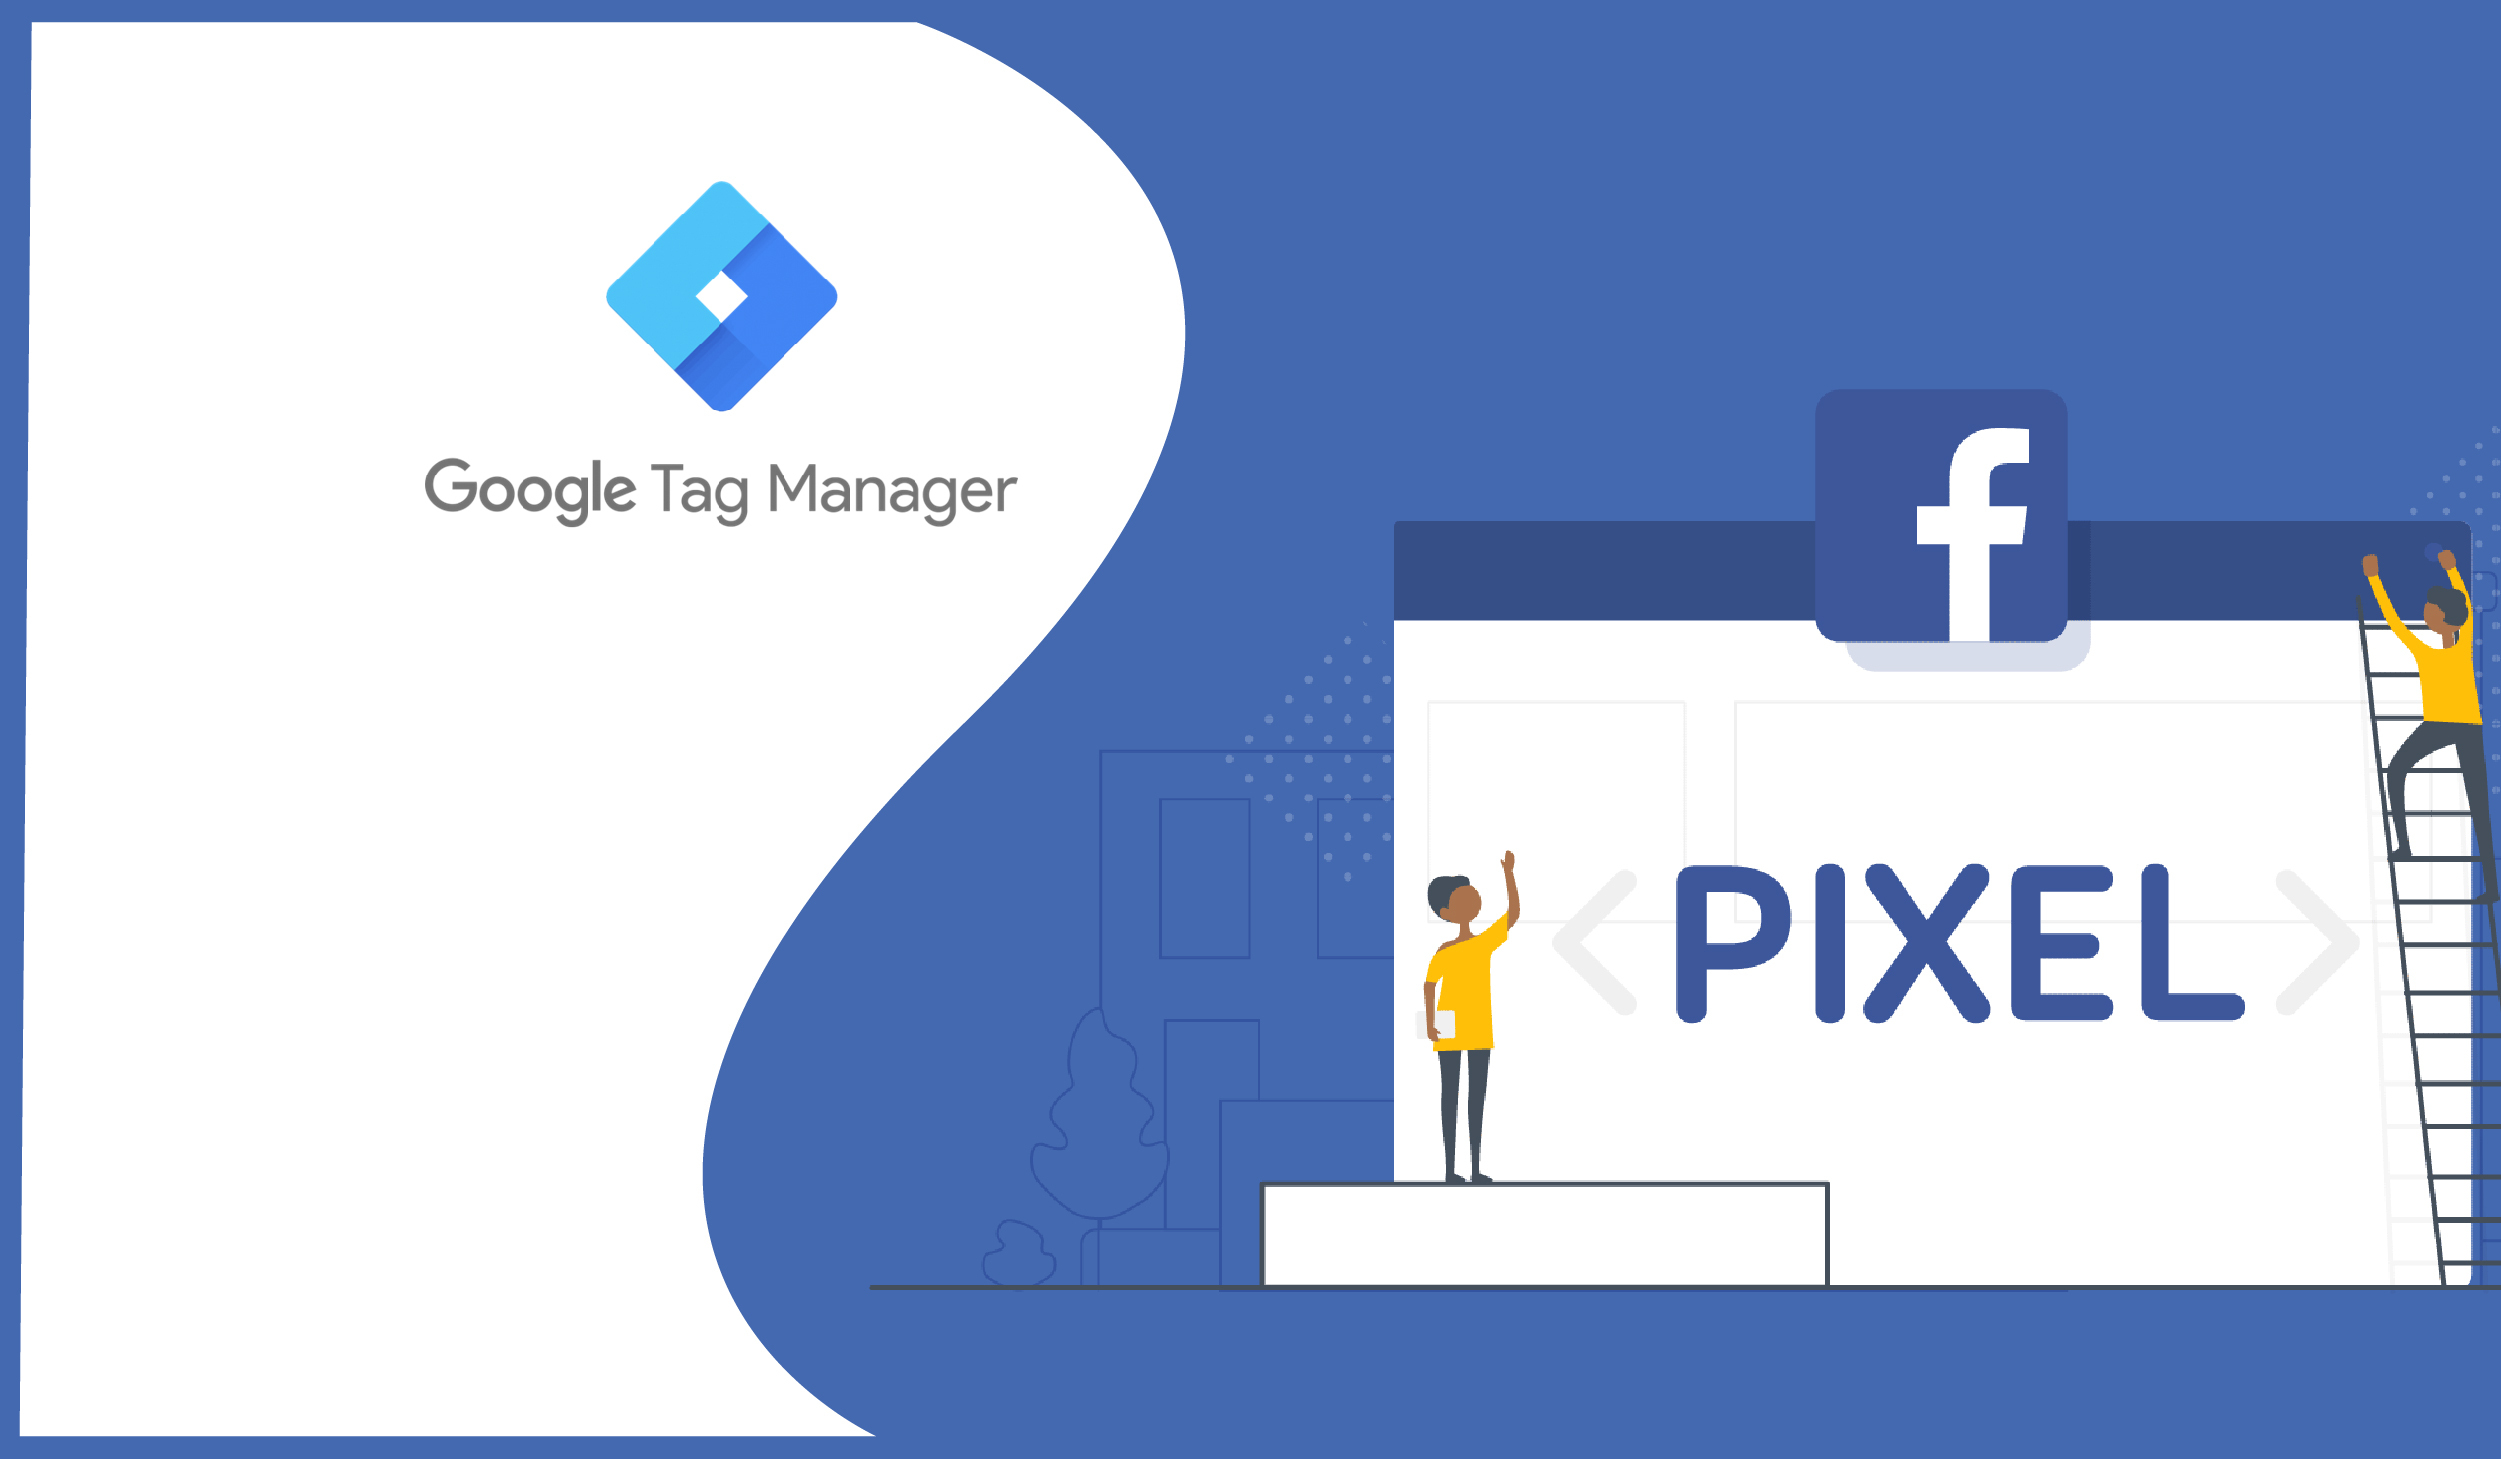 Install the Facebook Pixel for Dynamic Ads using Google Tag Manager